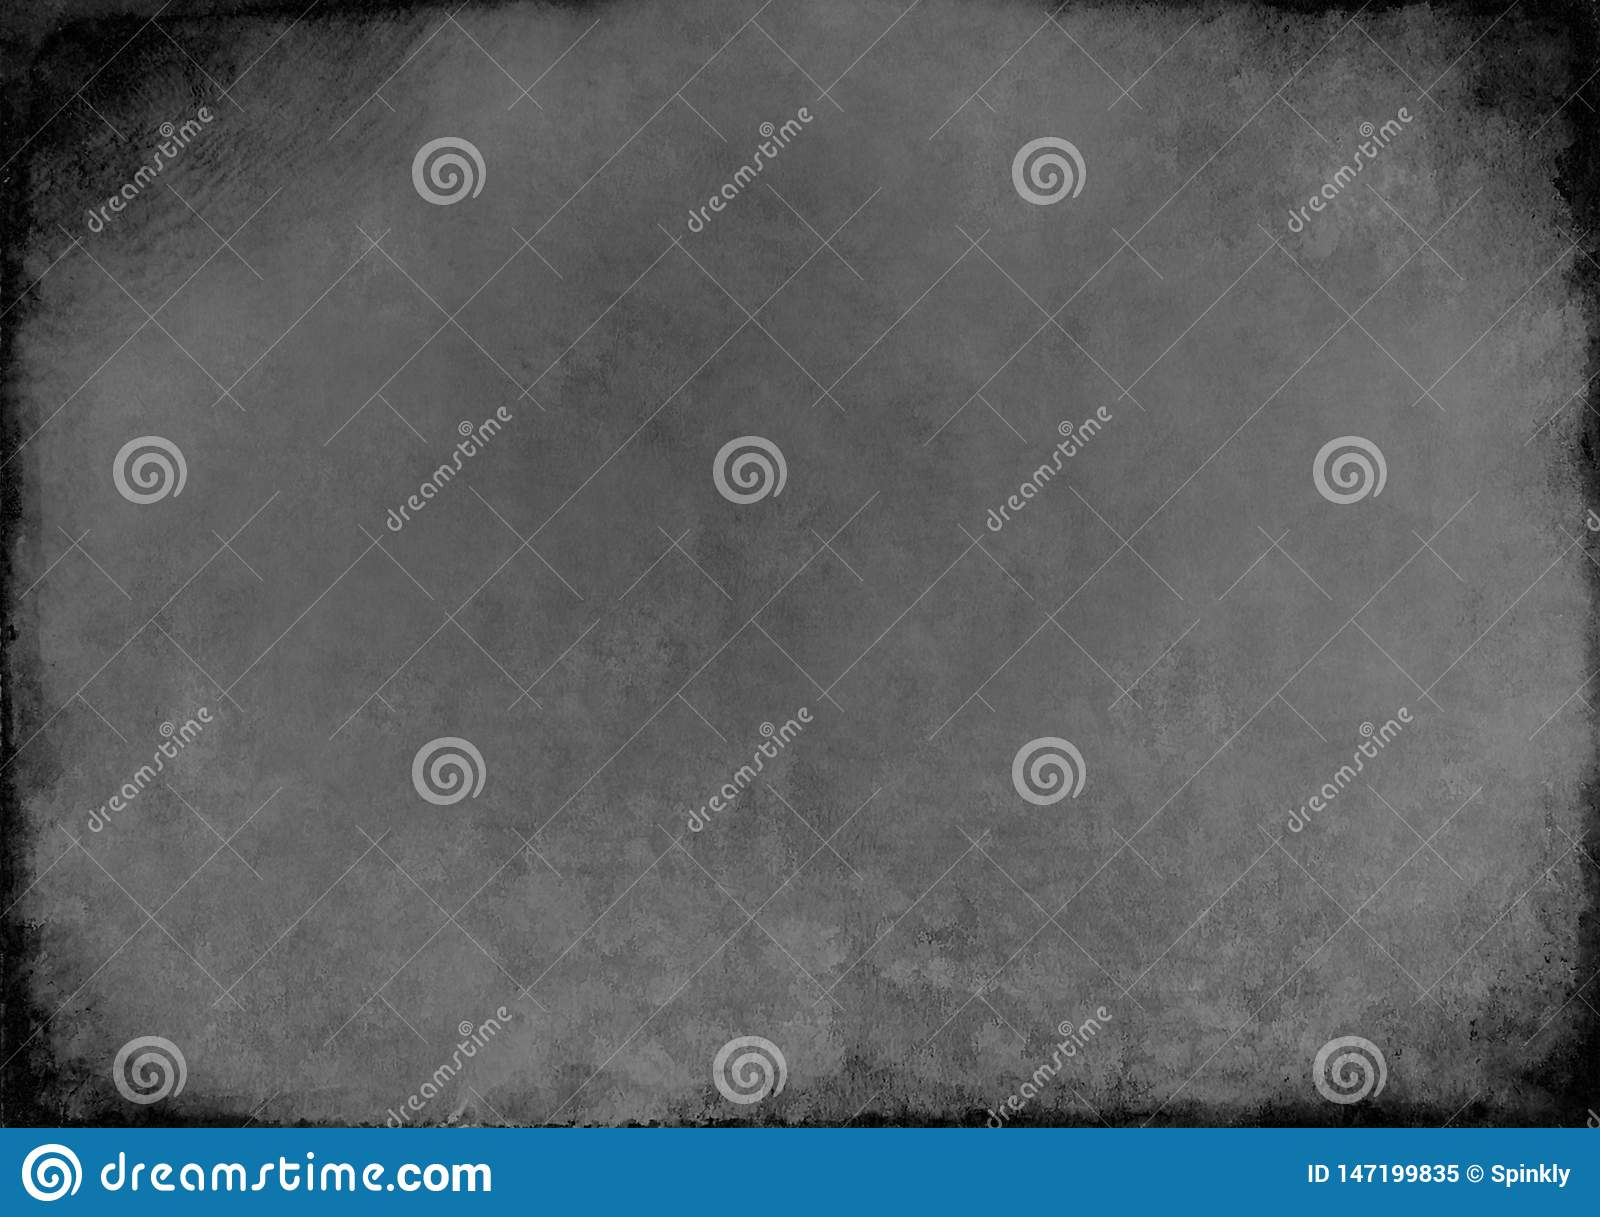 Grey background textured wallpaper design